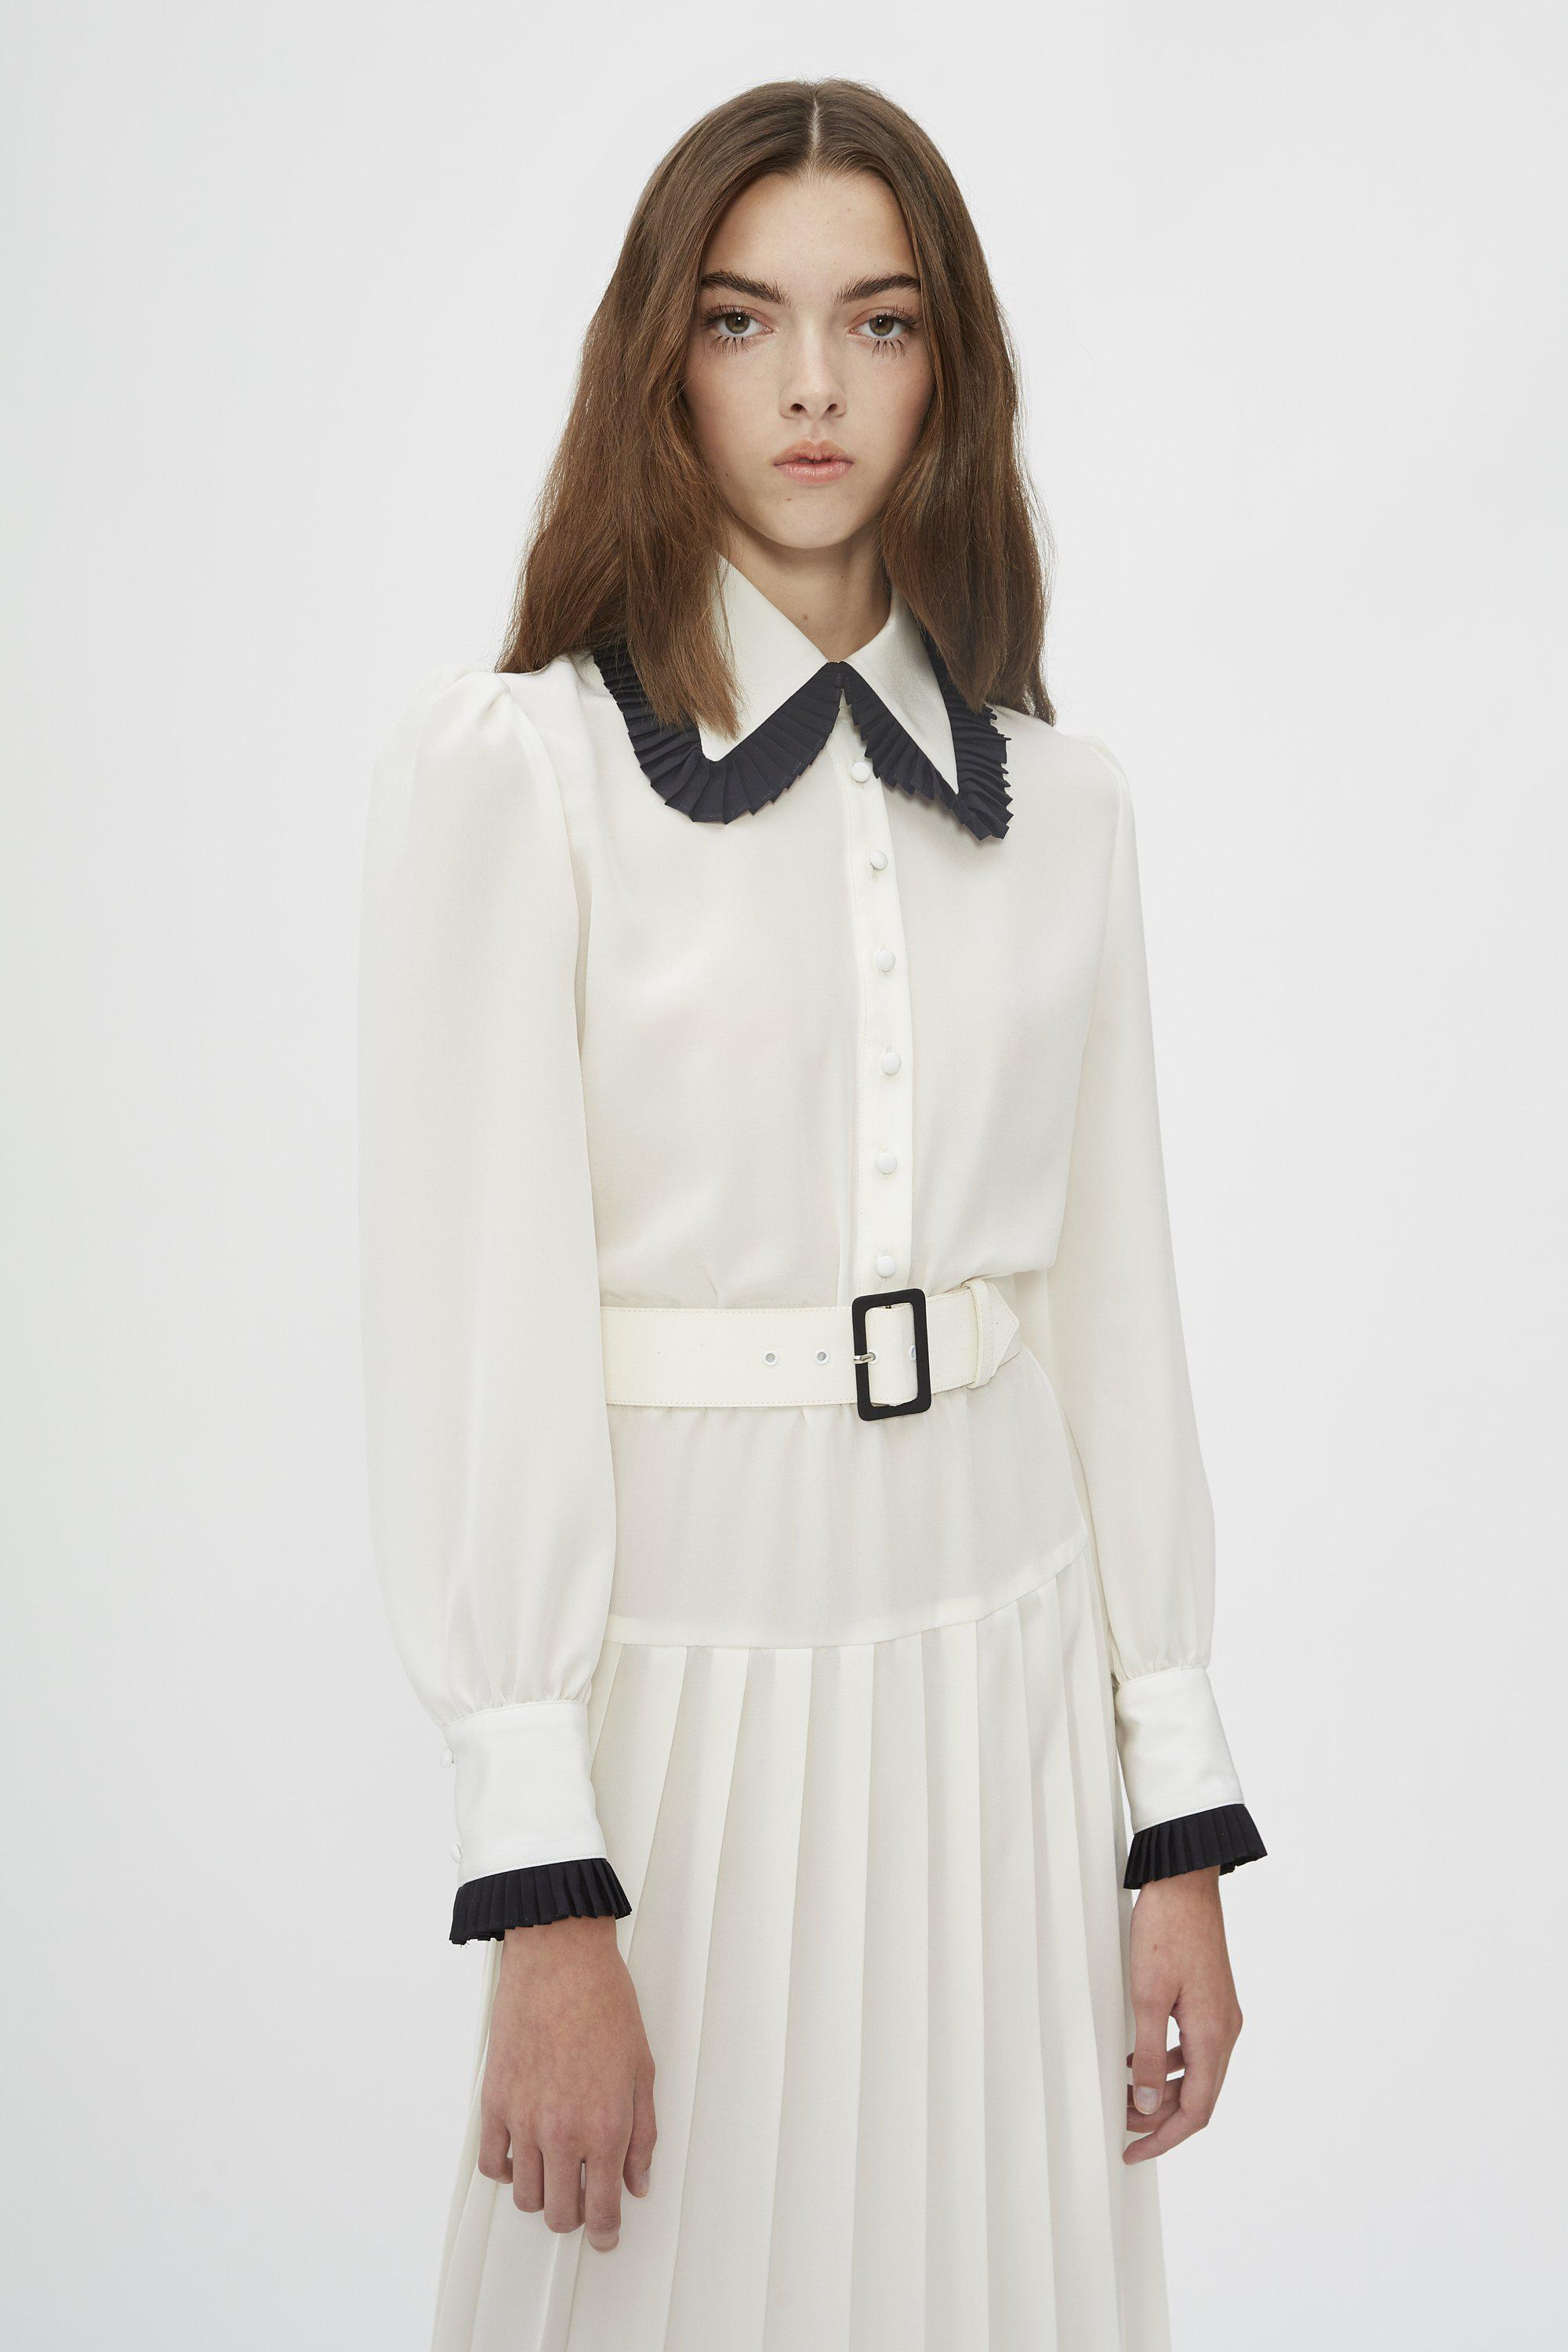 OFF WHITE AND BLACK BELTED SILK PLEATED COLLAR DRESS 2